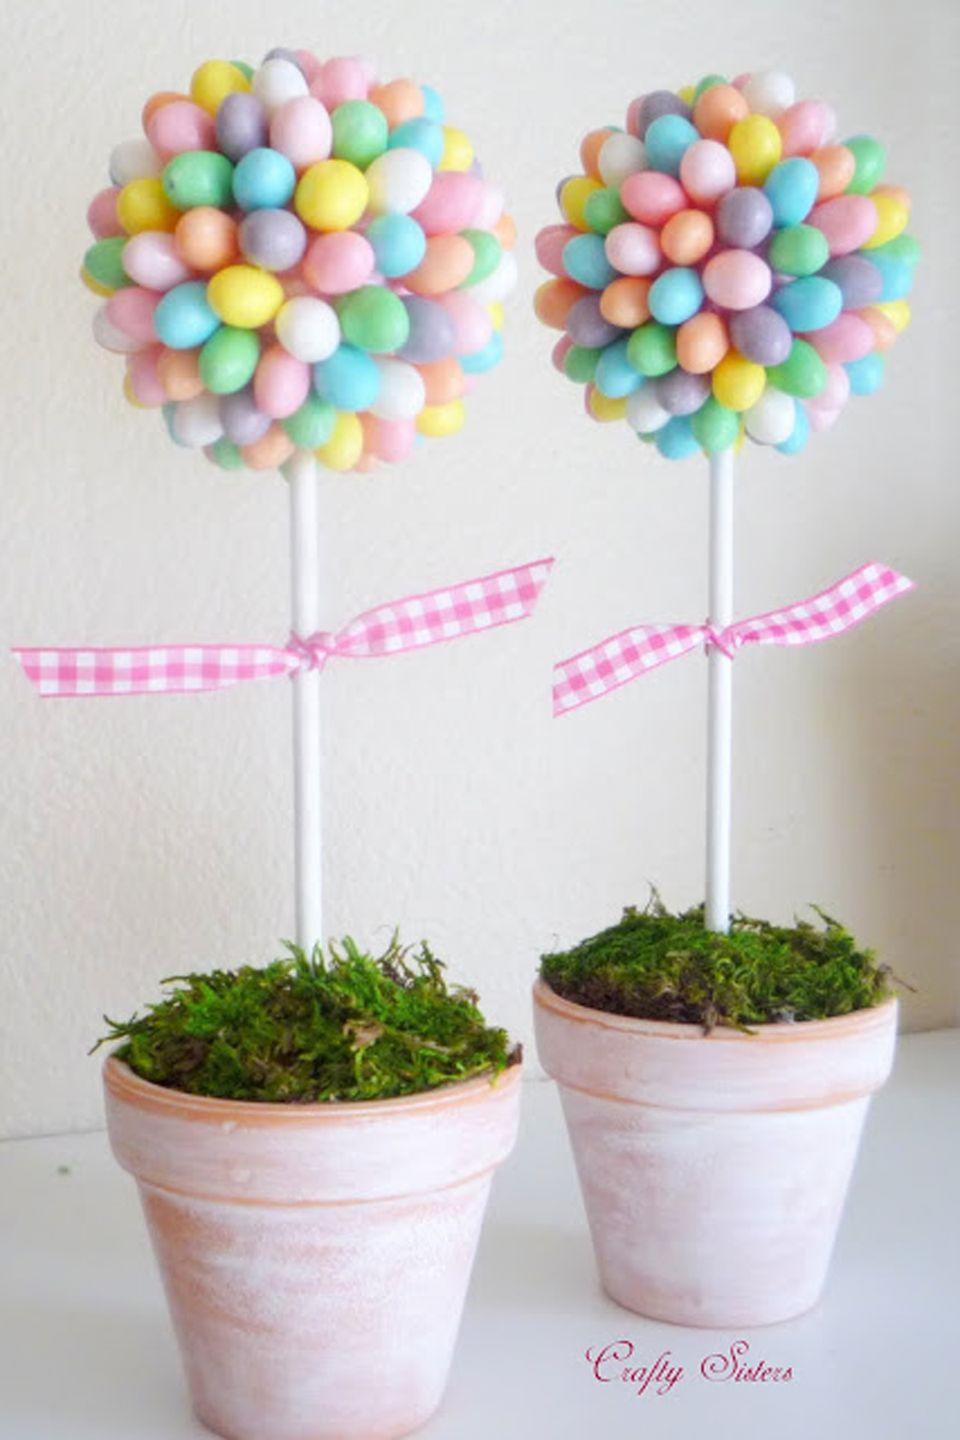 "<p>Give your mantel or kitchen island some springtime flair with these easy-to-make, pastel pieces.</p><p><strong>Get the tutorial at <a href=""http://craftysisters-nc.blogspot.com.br/2010/03/jelly-bean-topiary.html"" rel=""nofollow noopener"" target=""_blank"" data-ylk=""slk:Crafty Sisters"" class=""link rapid-noclick-resp"">Crafty Sisters</a>.</strong></p><p><a class=""link rapid-noclick-resp"" href=""https://www.amazon.com/Brachs-Speckled-Jelly-Beans-Pounds/dp/B071H7XP6K/ref=sxts_sxwds-bia-wc-rsf-lq2a3_0?tag=syn-yahoo-20&ascsubtag=%5Bartid%7C10050.g.1652%5Bsrc%7Cyahoo-us"" rel=""nofollow noopener"" target=""_blank"" data-ylk=""slk:SHOP JELLY BEANS"">SHOP JELLY BEANS</a></p>"